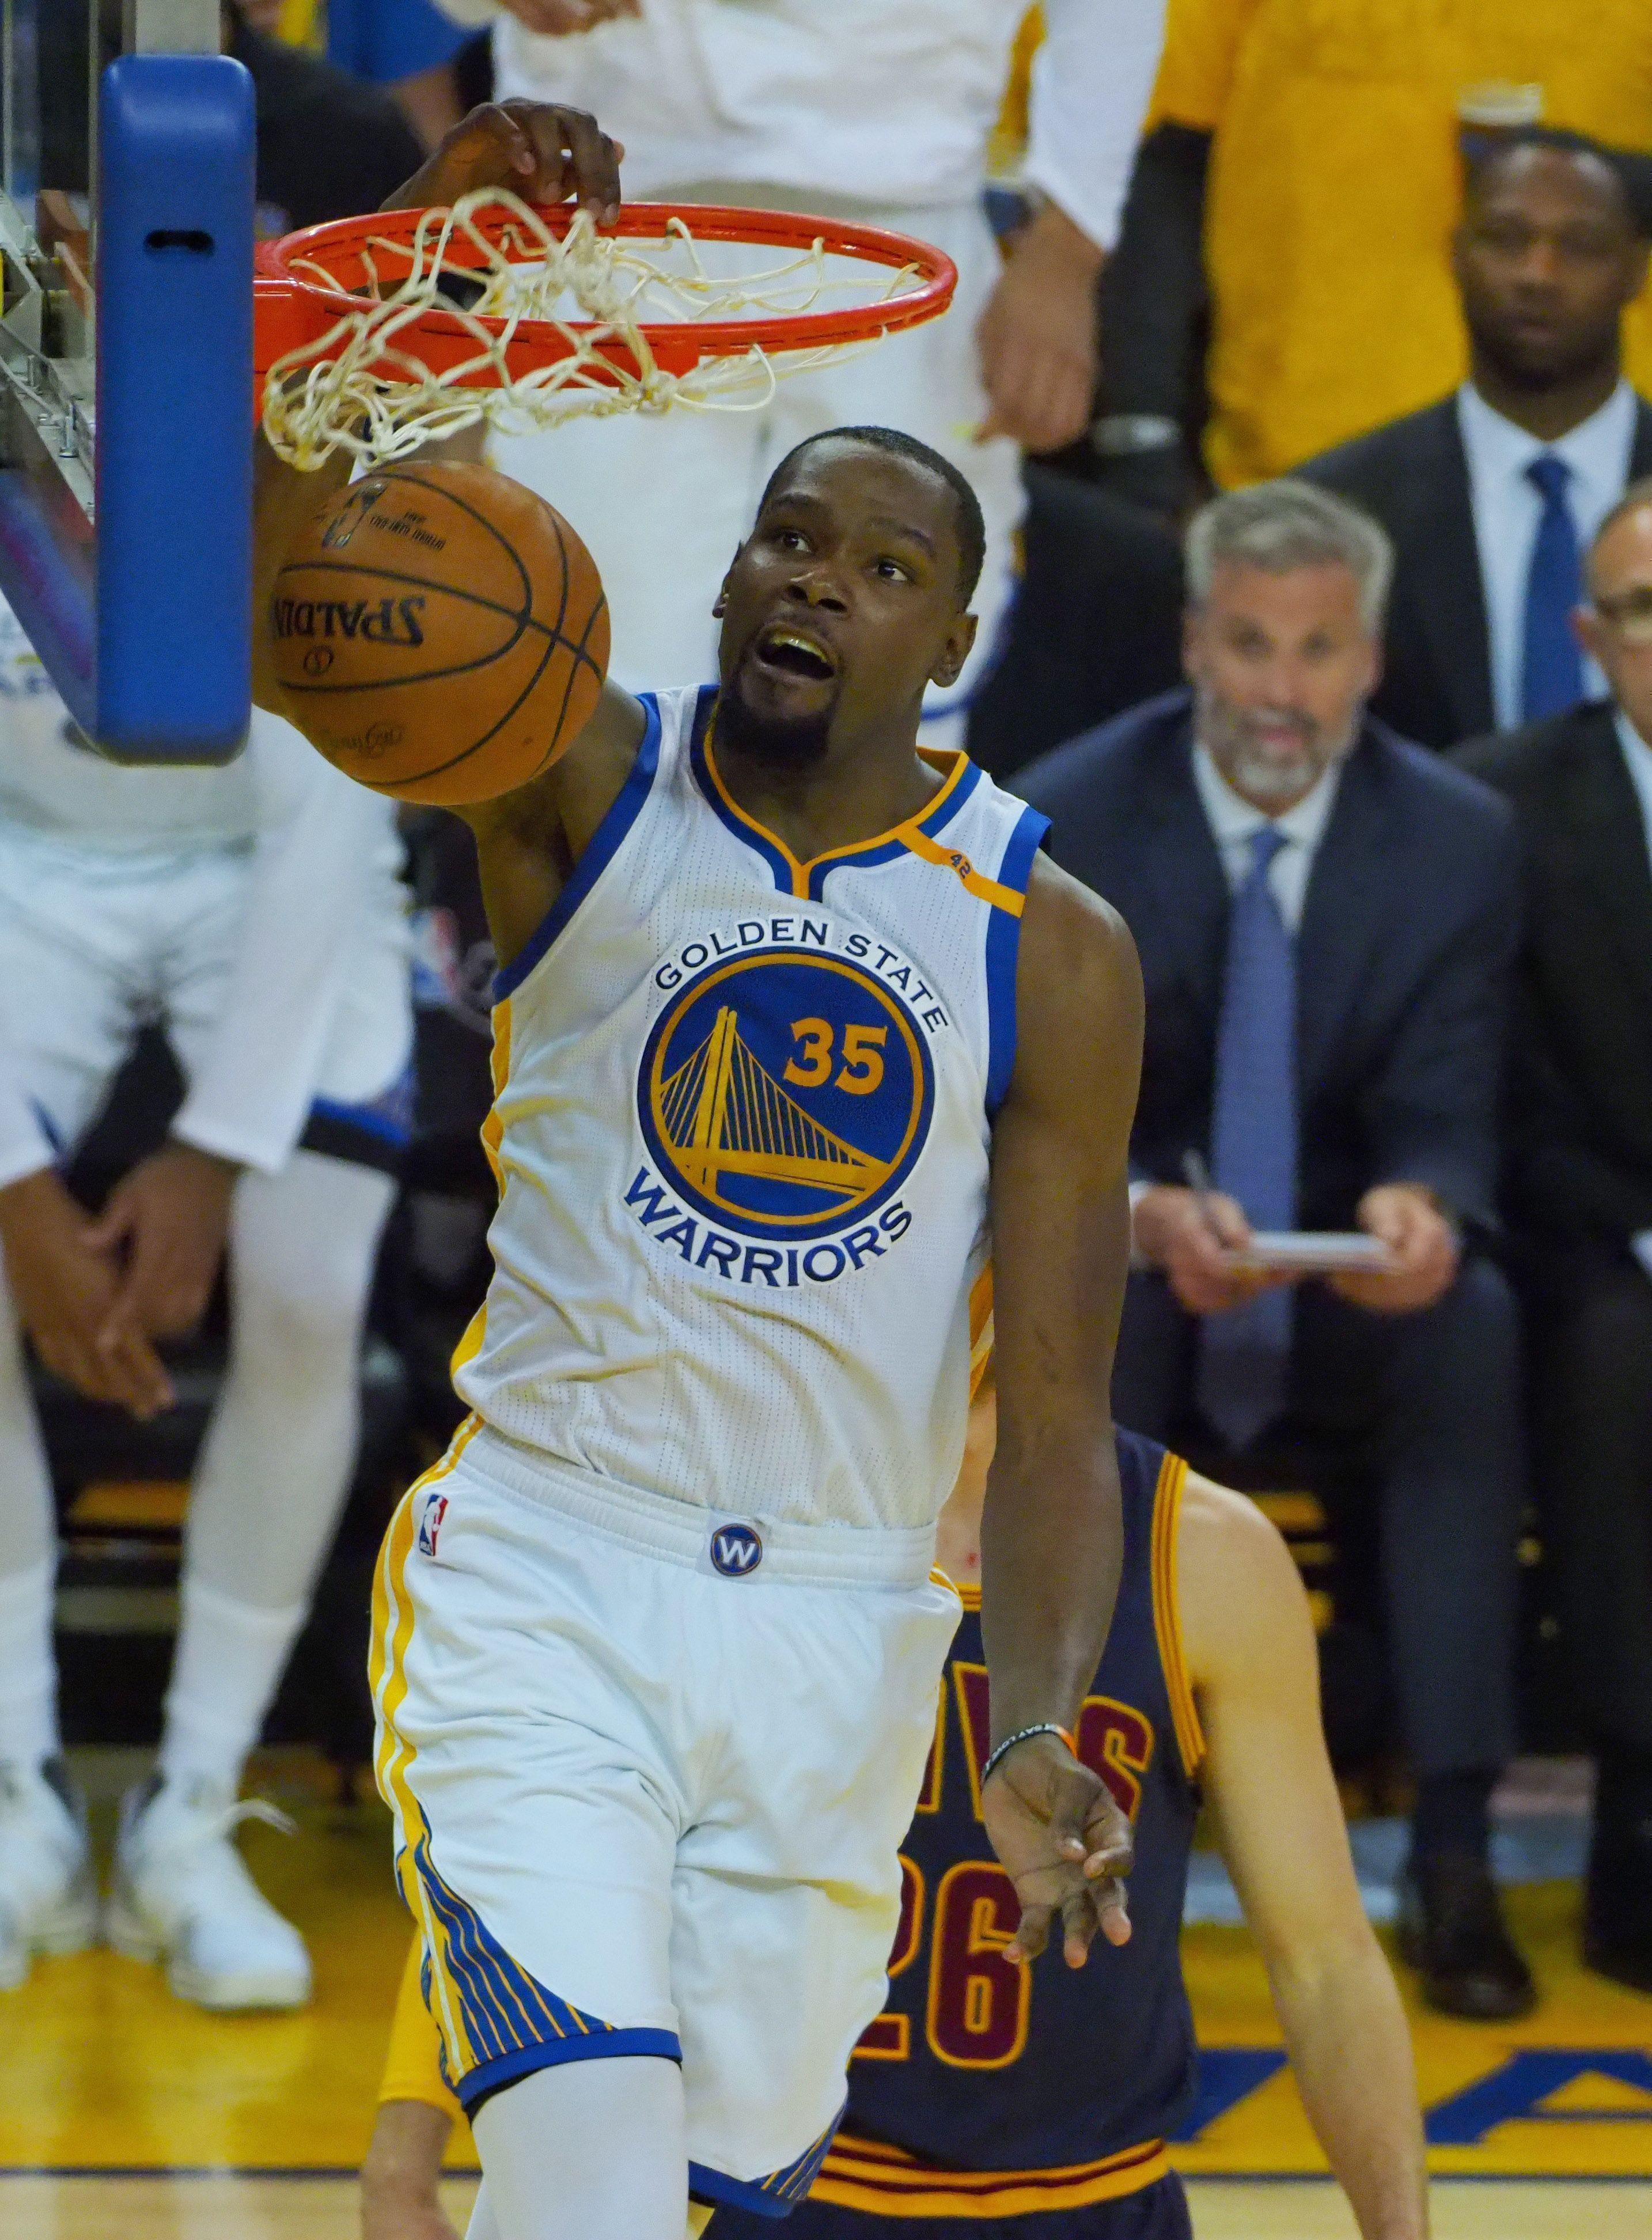 Kevin Durant, Stephen Curry power Warriors to 113-91 Game 1 rout of Cavs